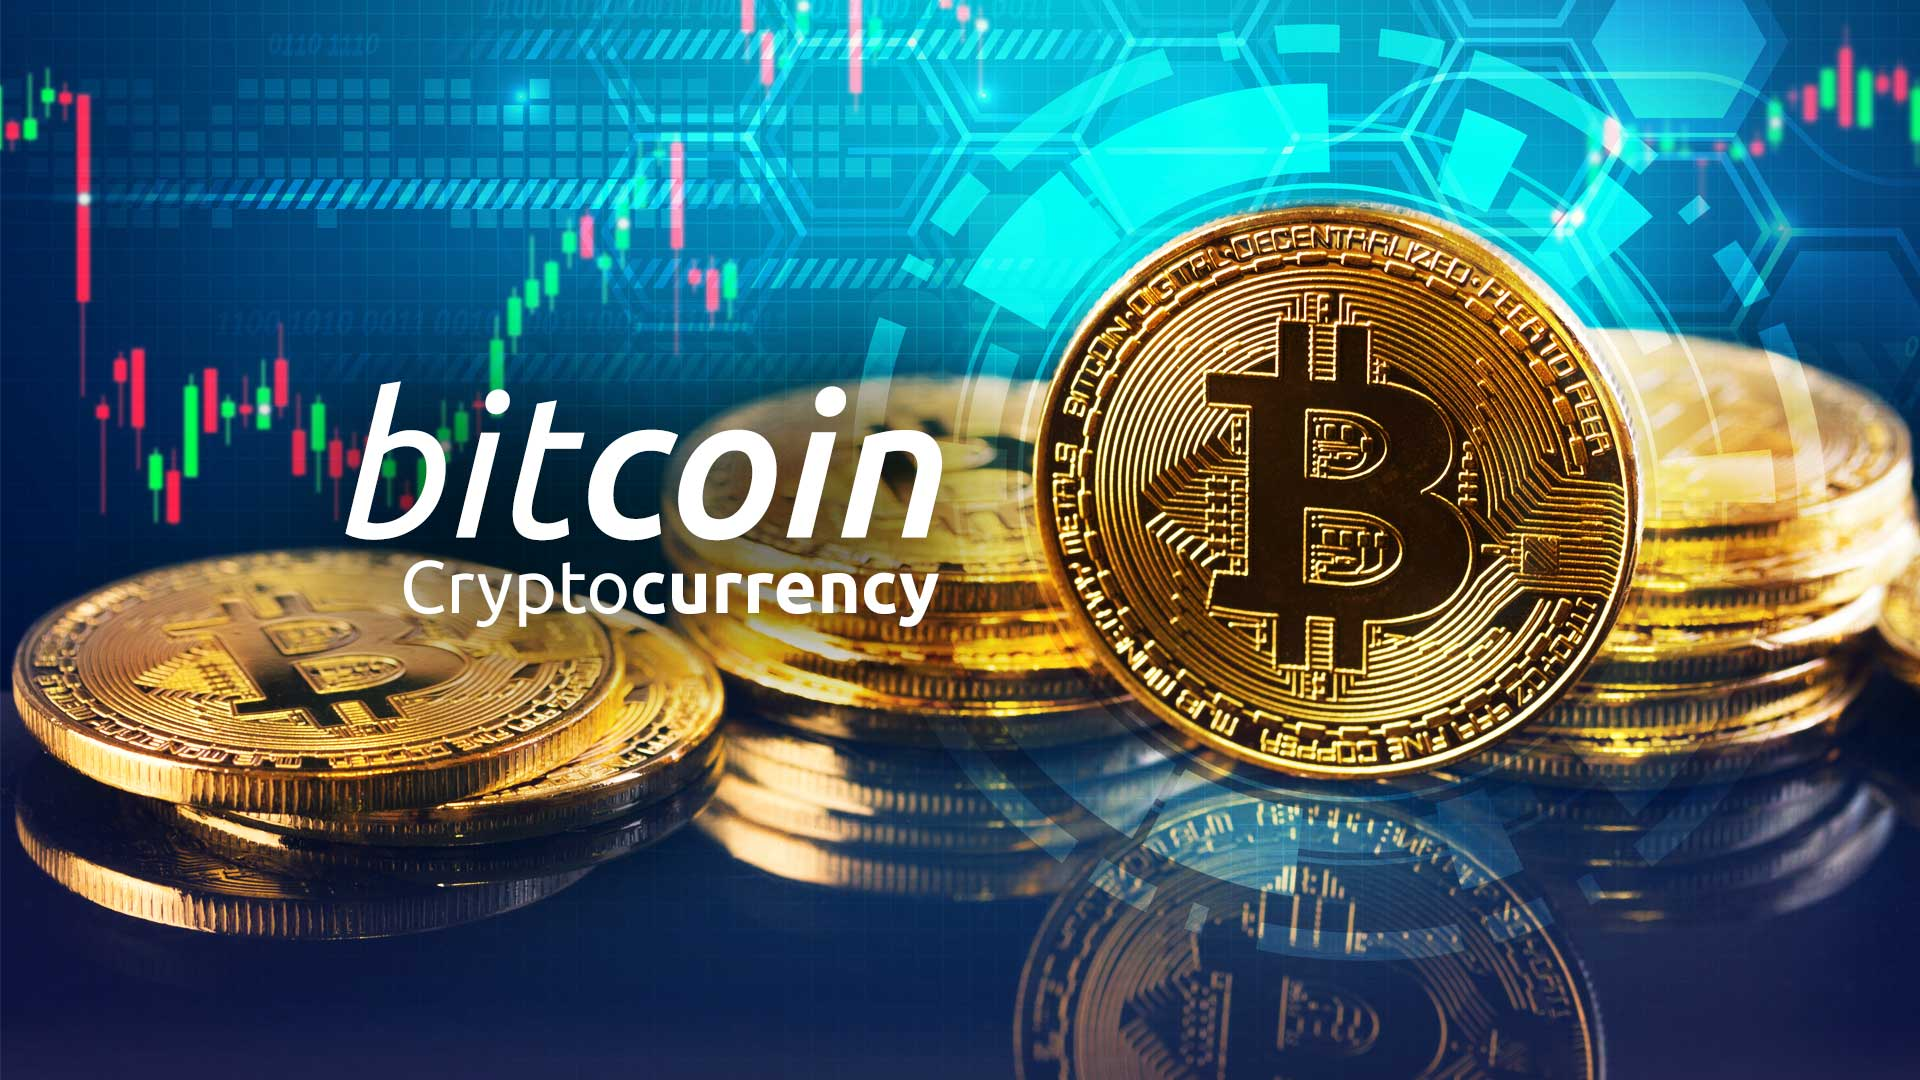 Why is bitcoin and other cryptocurrencies invalid in Islam?